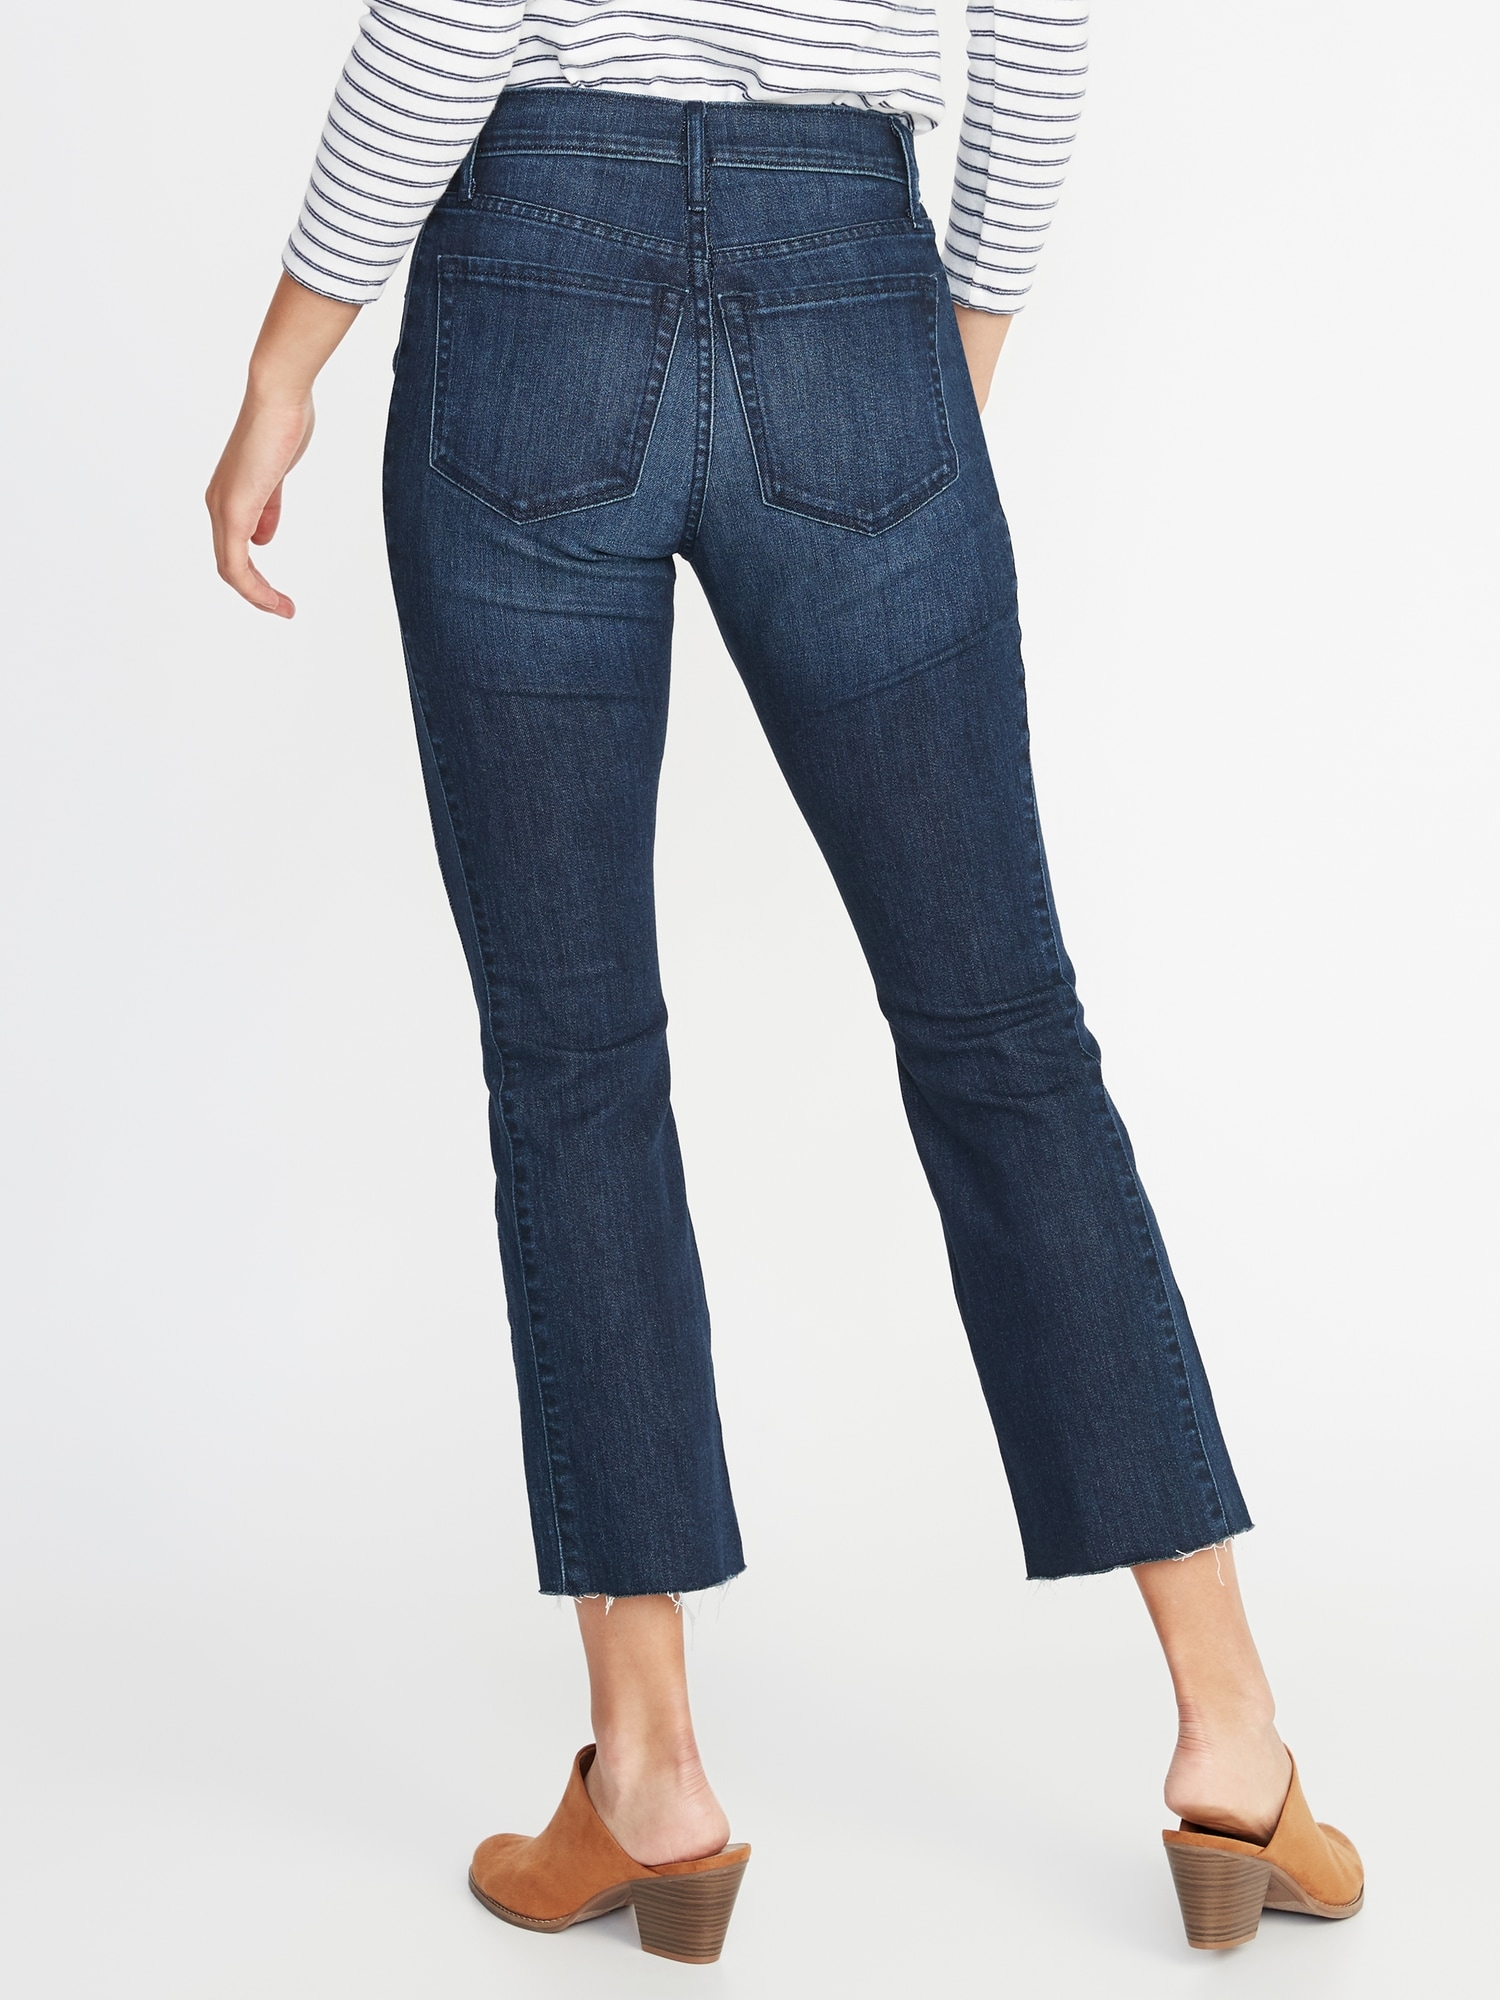 aa0cbf8a150 Raw-Edge Cropped Flare Jeans for Women